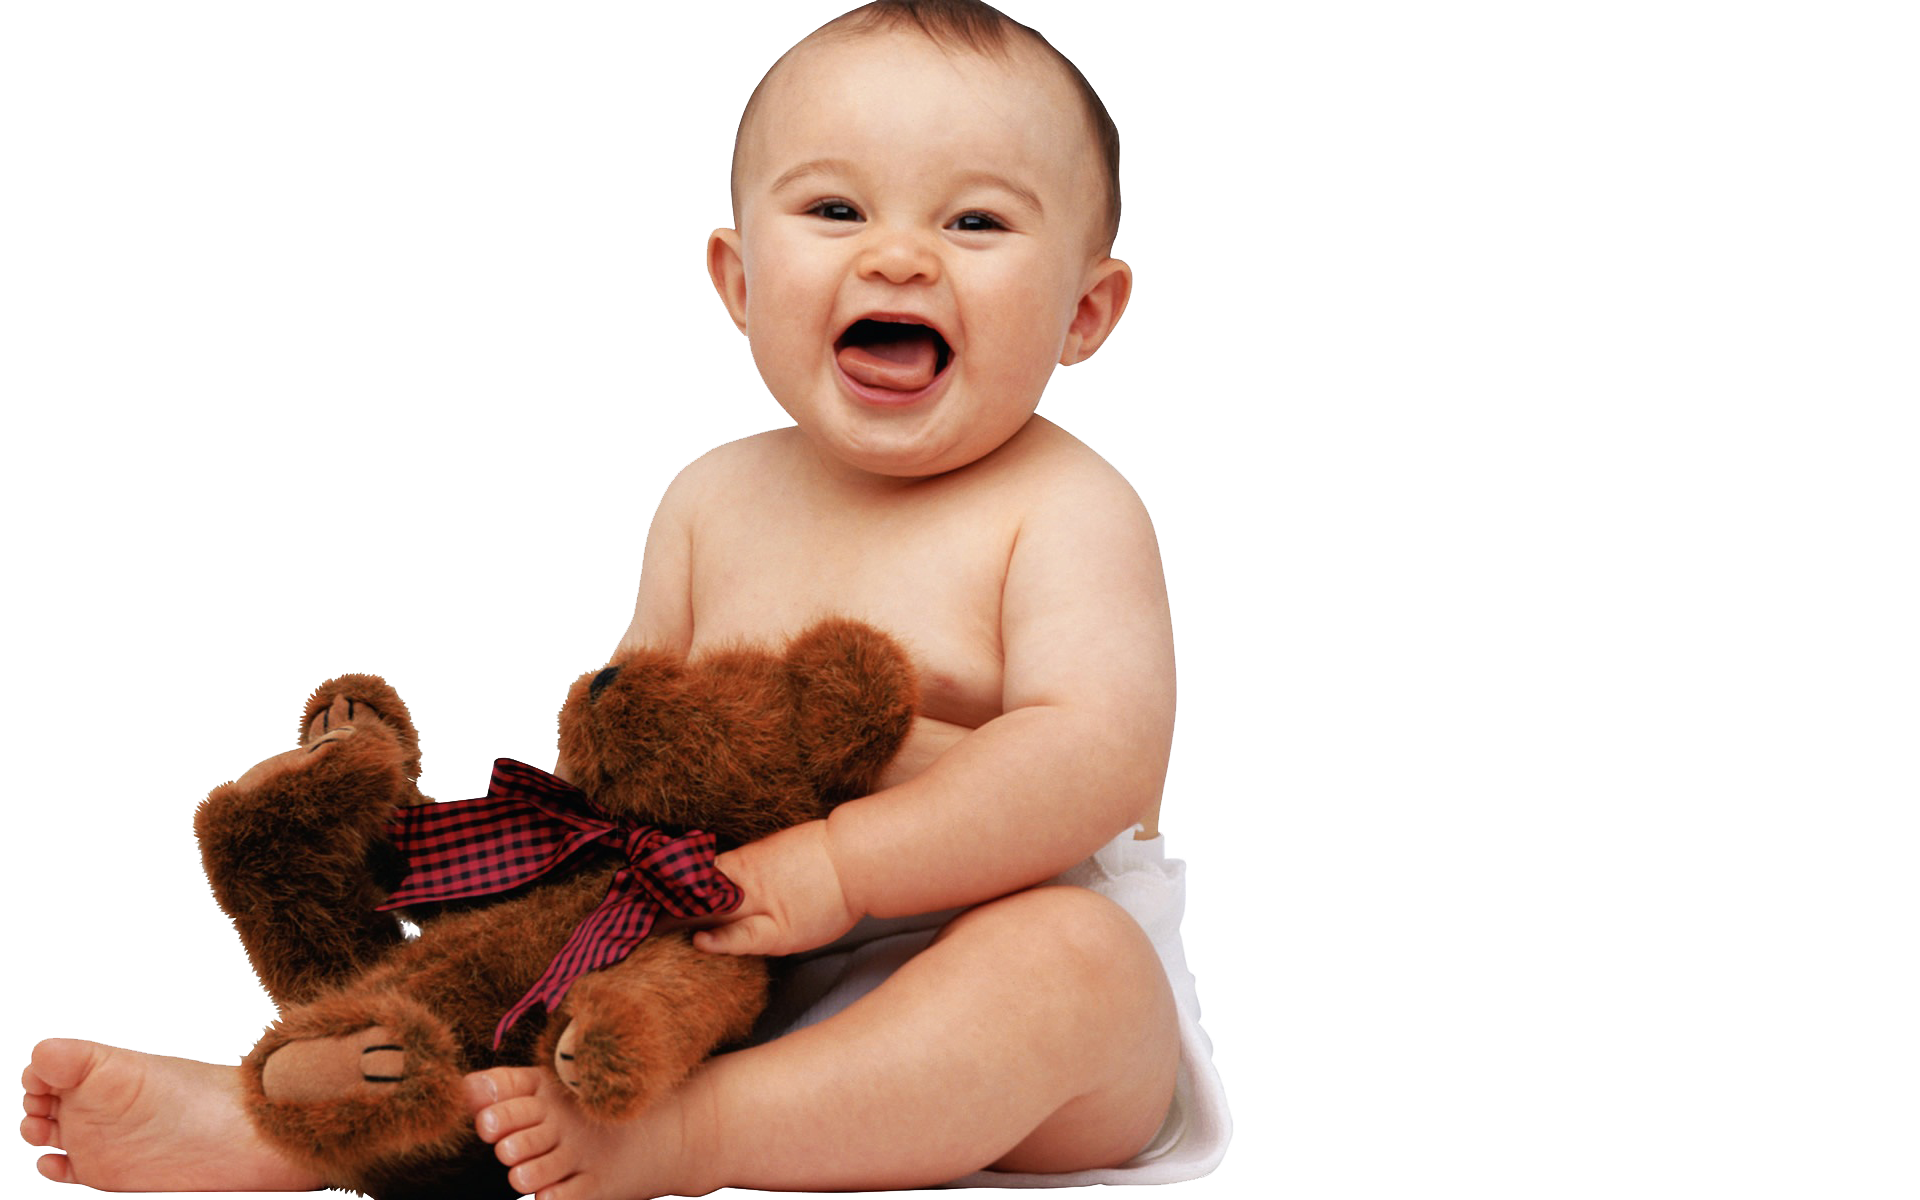 Baby HD PNG - 116778